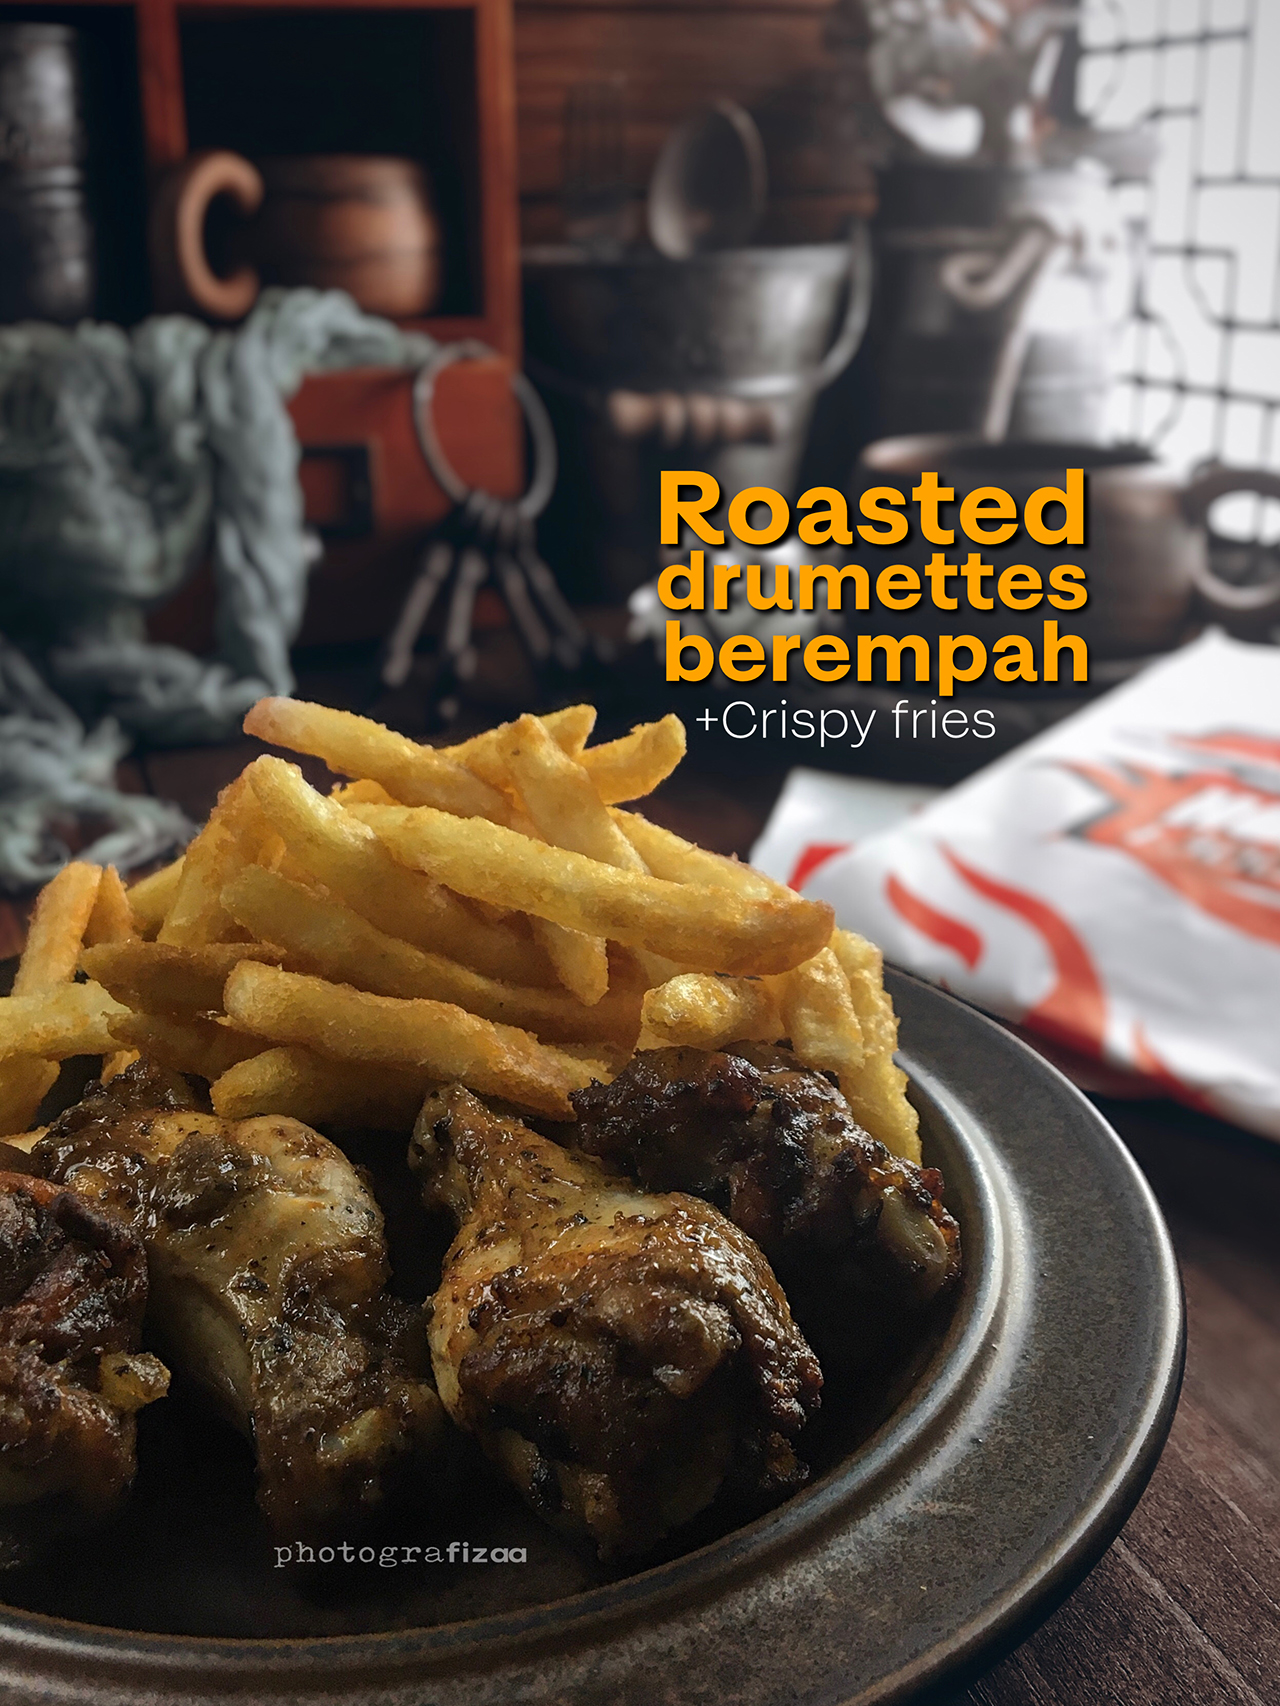 Roasted Drumettes Berempah & Crispy Fries